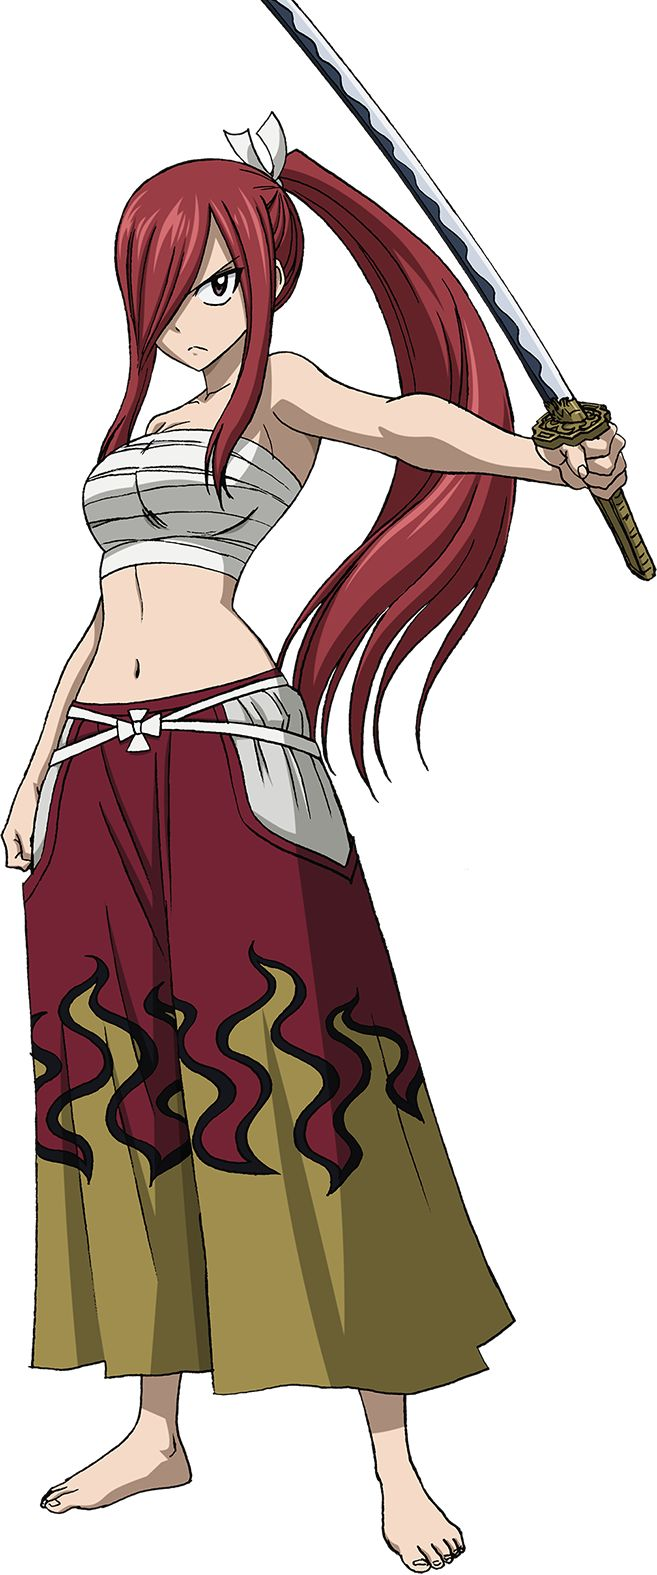 Erza Scarlet - I don't know who this girl is, but she looks kinda like my Ronin Yoshino... :/